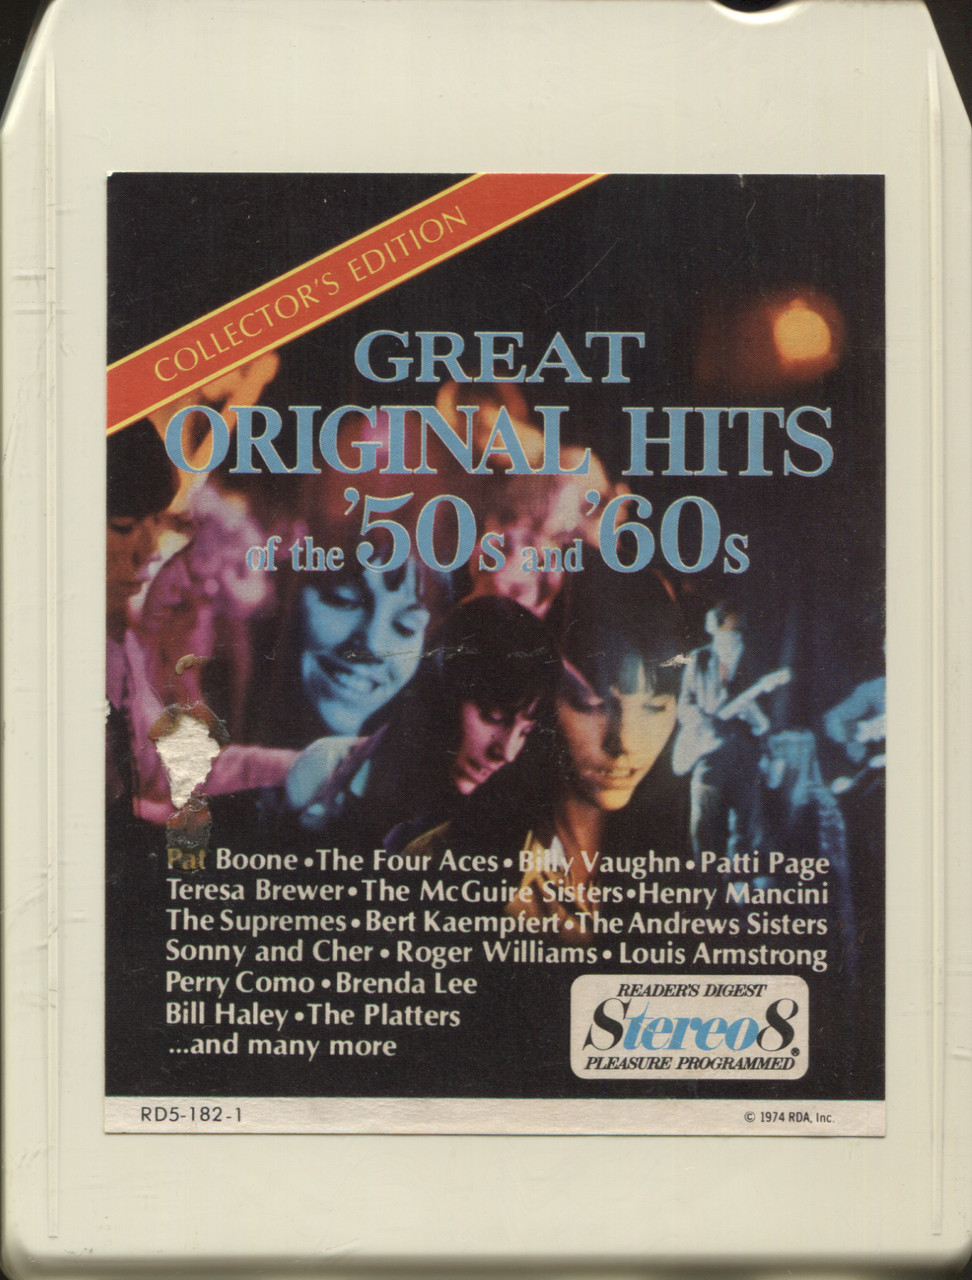 Reader's Digest Great Original Hits of the 20's & 20's   Tape 20 20 Track Tape